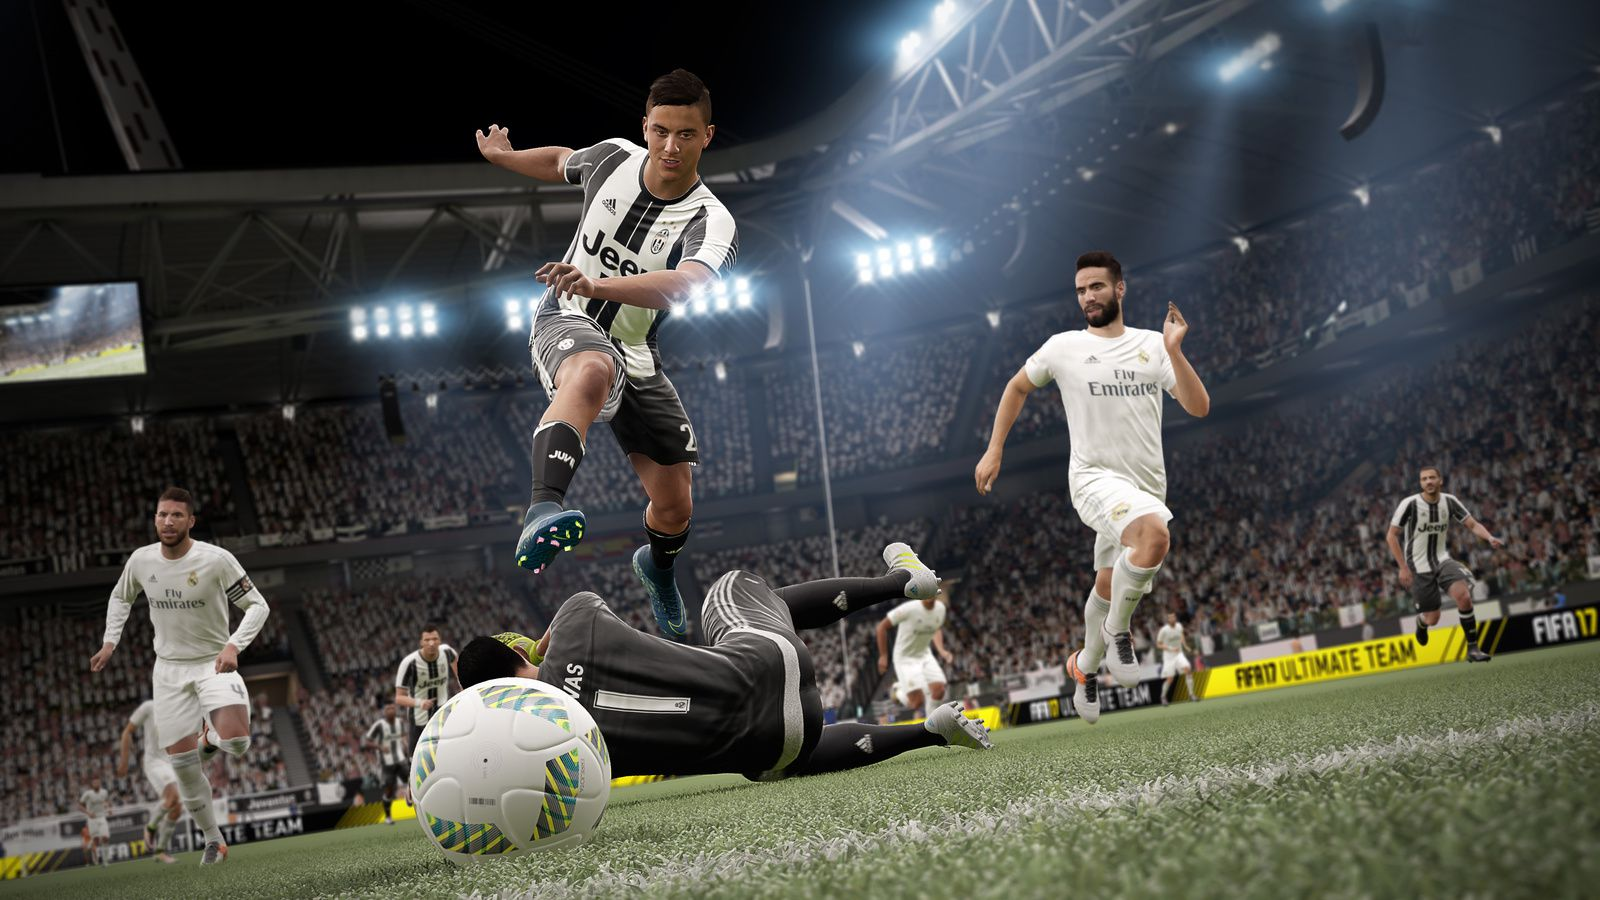 30 DAY VIDEO GAME CHALLENGE: Jour 10 Le meilleur gameplay, FIFA